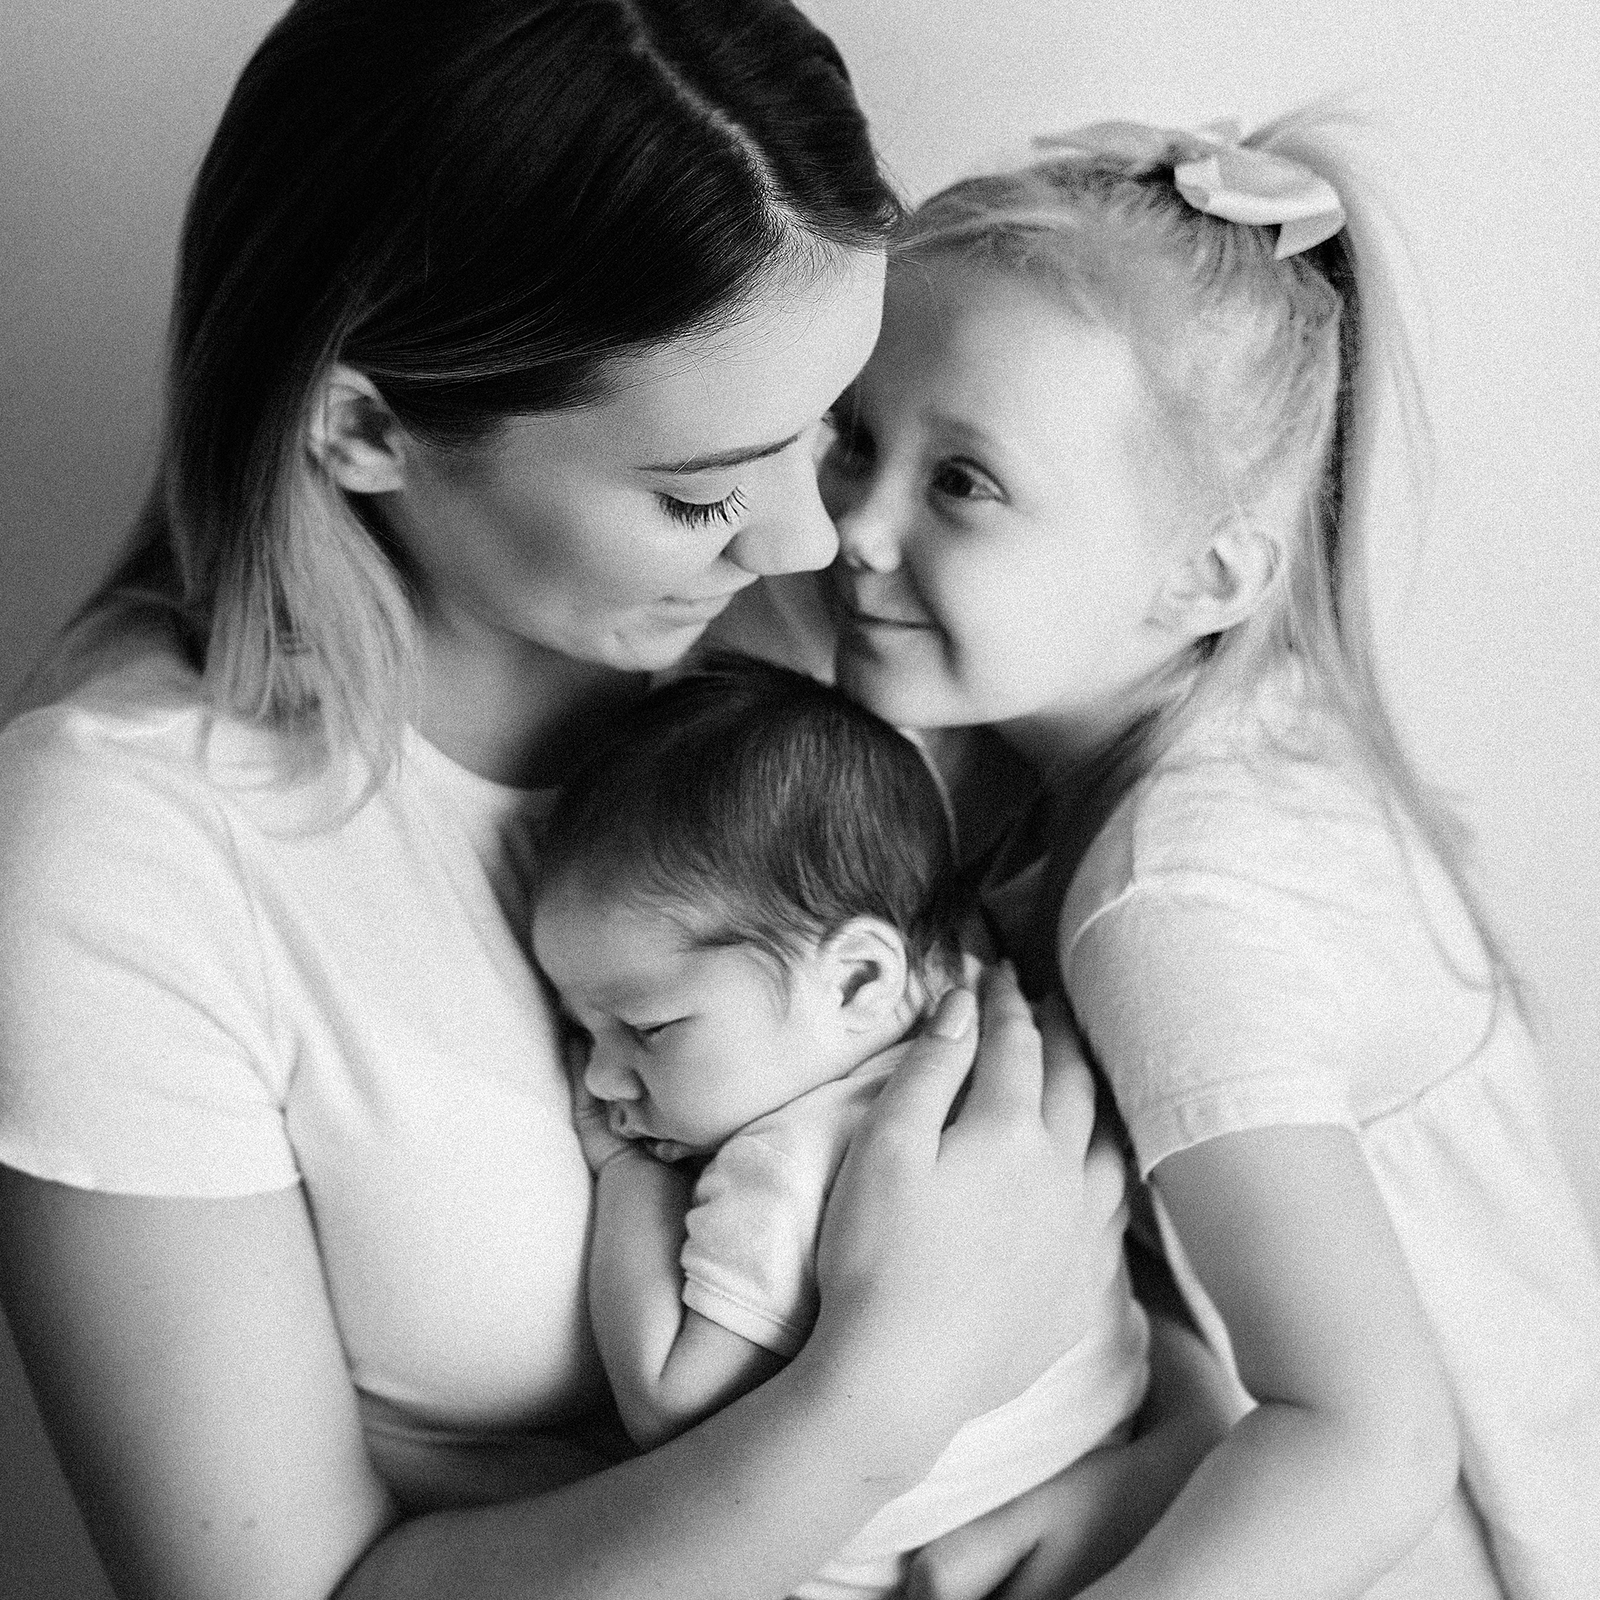 Baby-Photo-Baby-Photographer-family-siblings